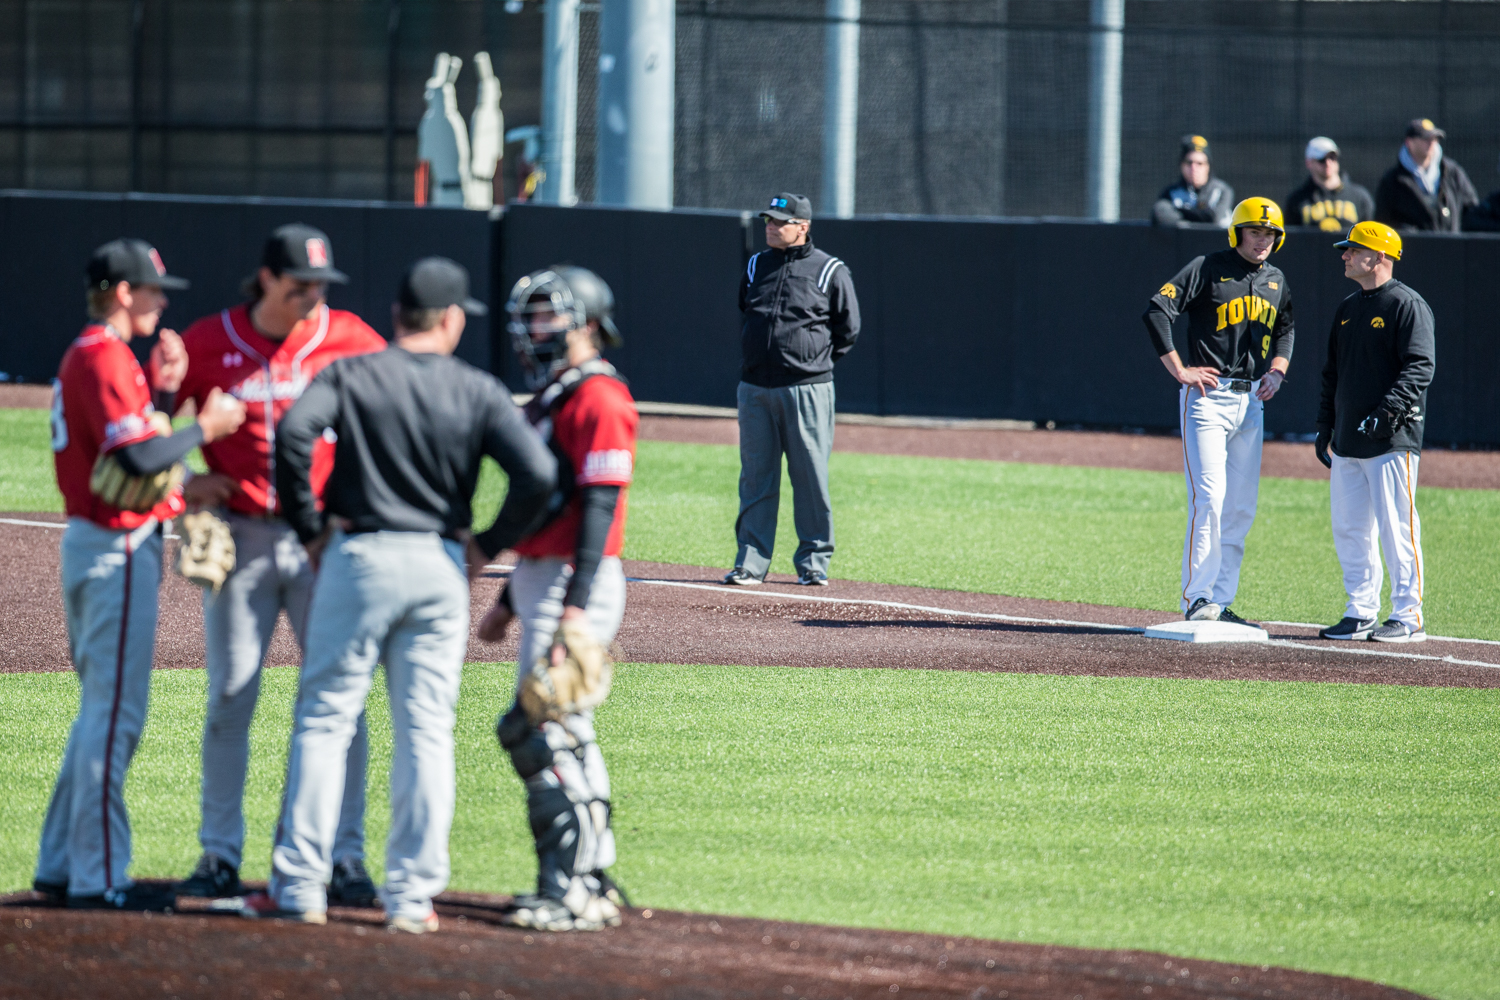 Iowa+outfielder+Ben+Norman+stands+on+first+base+during+the+first+game+of+a+baseball+doubleheader+between+Iowa+and+Cal-State+Northridge+at+Duane+Banks+Field+on+Sunday%2C+March+17%2C+2019.+The+Hawkeyes+defeated+the+Matadors%2C+5-4.